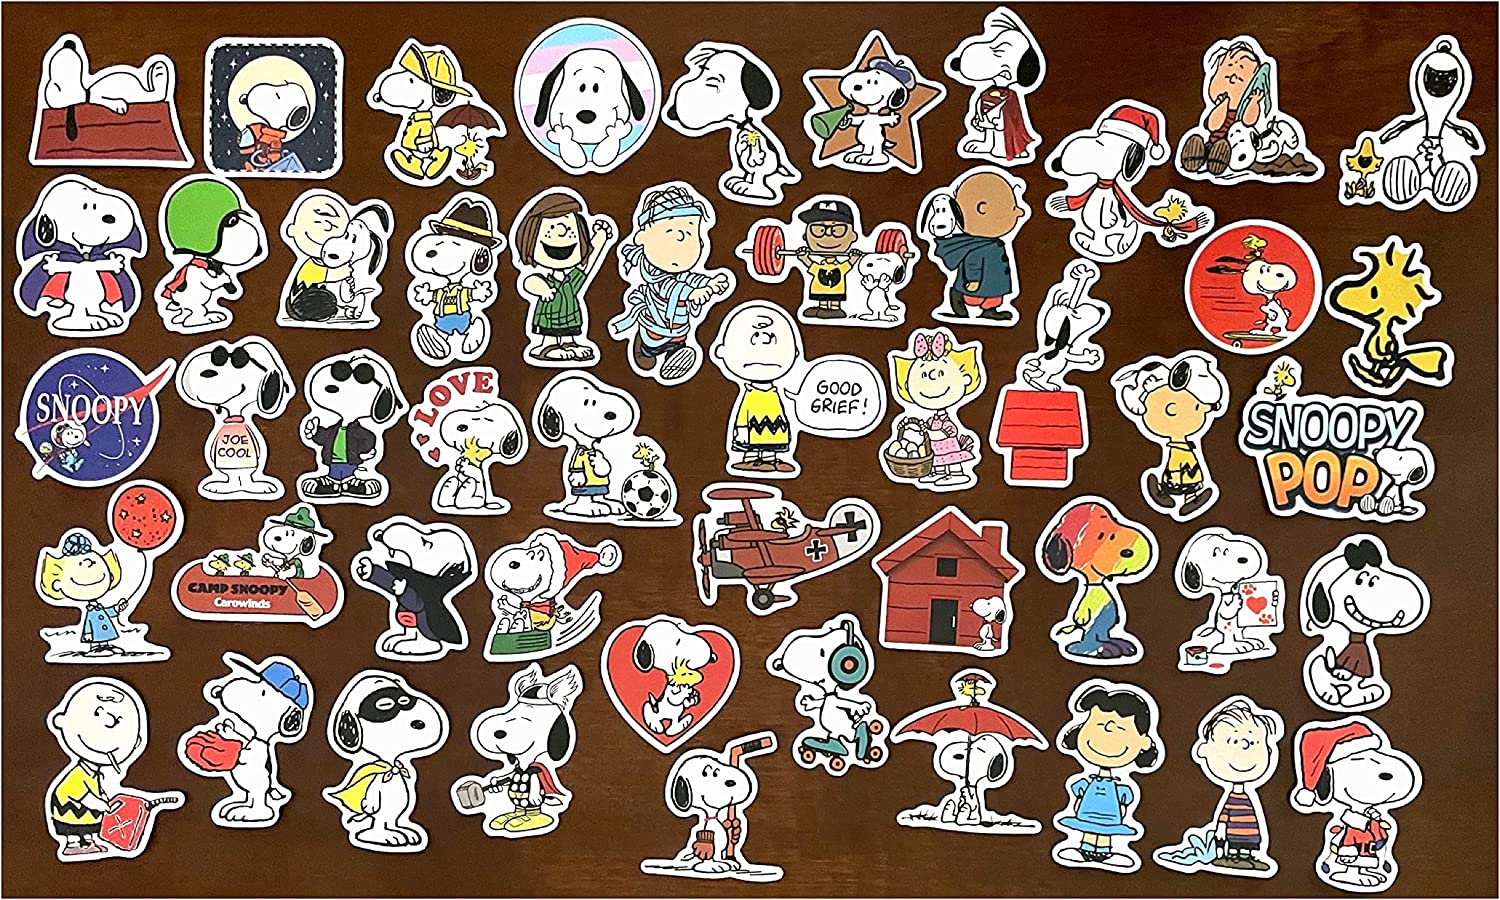 Beagle Dog -1 Decal Non-Repeating, 50 pcs Peanuts Vinyl Stickers for Hydro Flask Water Bottles Laptop Computer Skateboard Car Bumper Waterproof Decals for Kids Adult Teens Girls Boys…